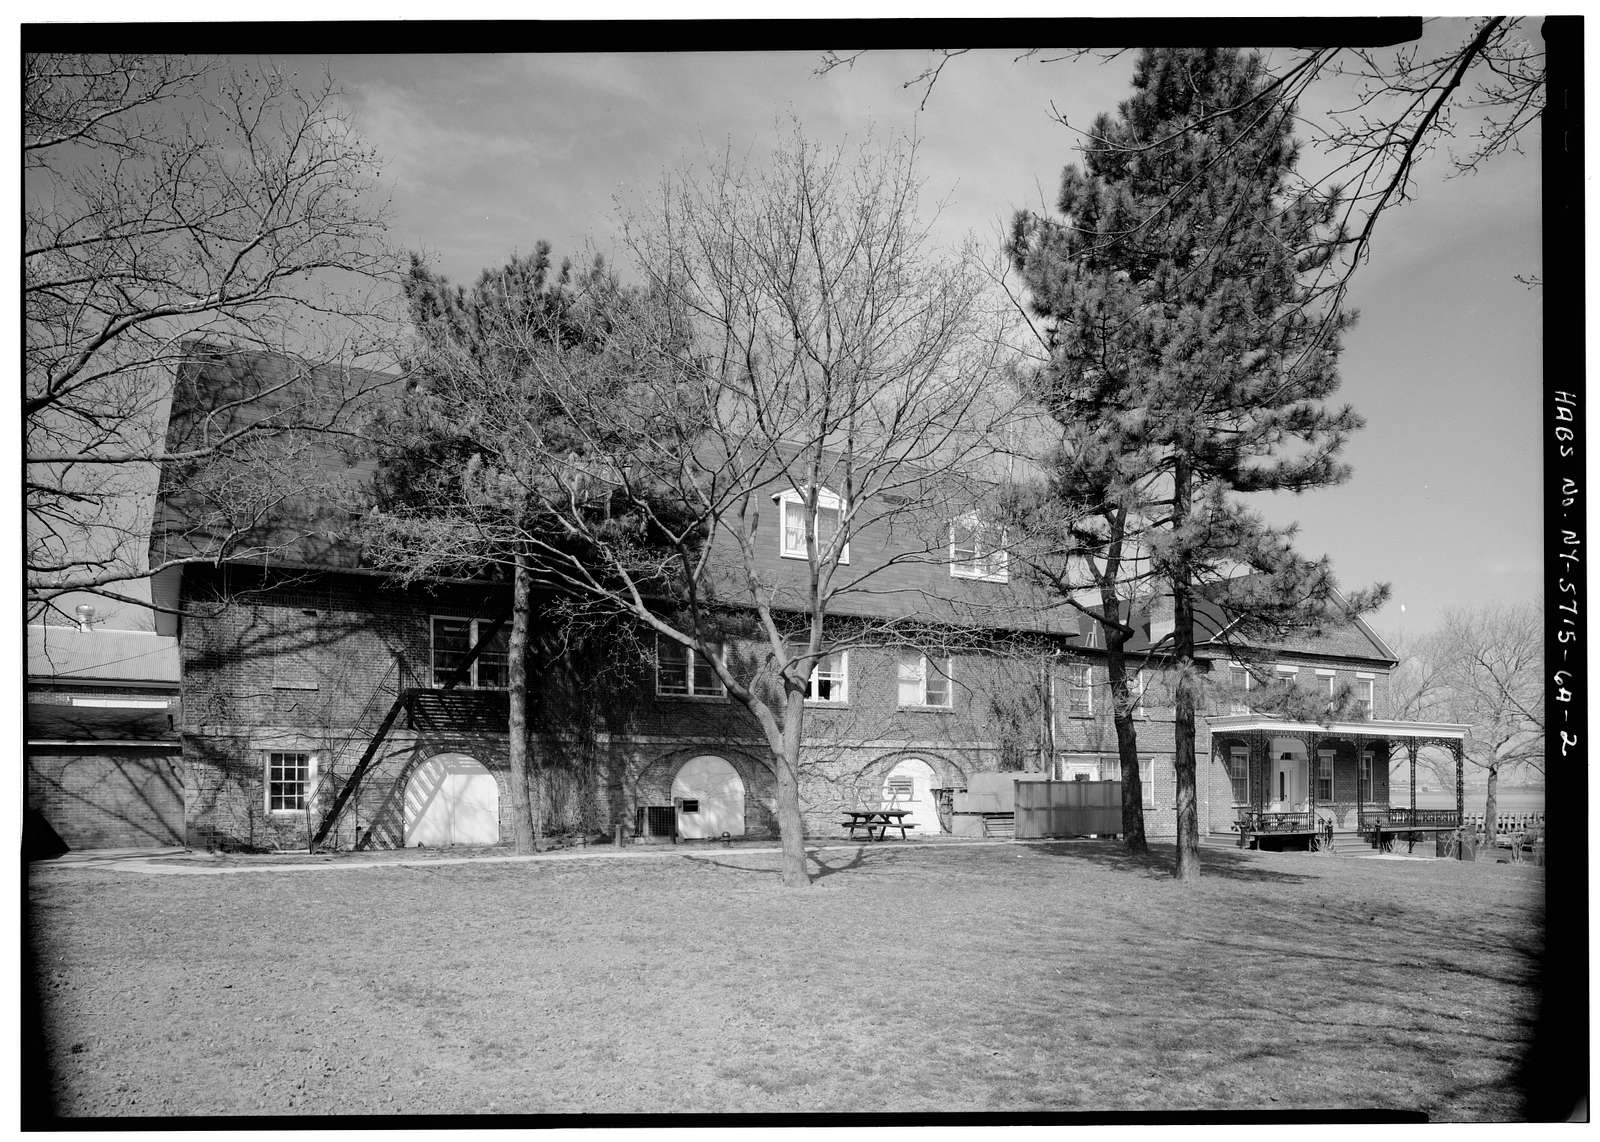 Governors Island, New York Arsenal, Storehouse & Commanding Officers' Quarters, New York Harbor near Andes Road, New York, New York County, NY